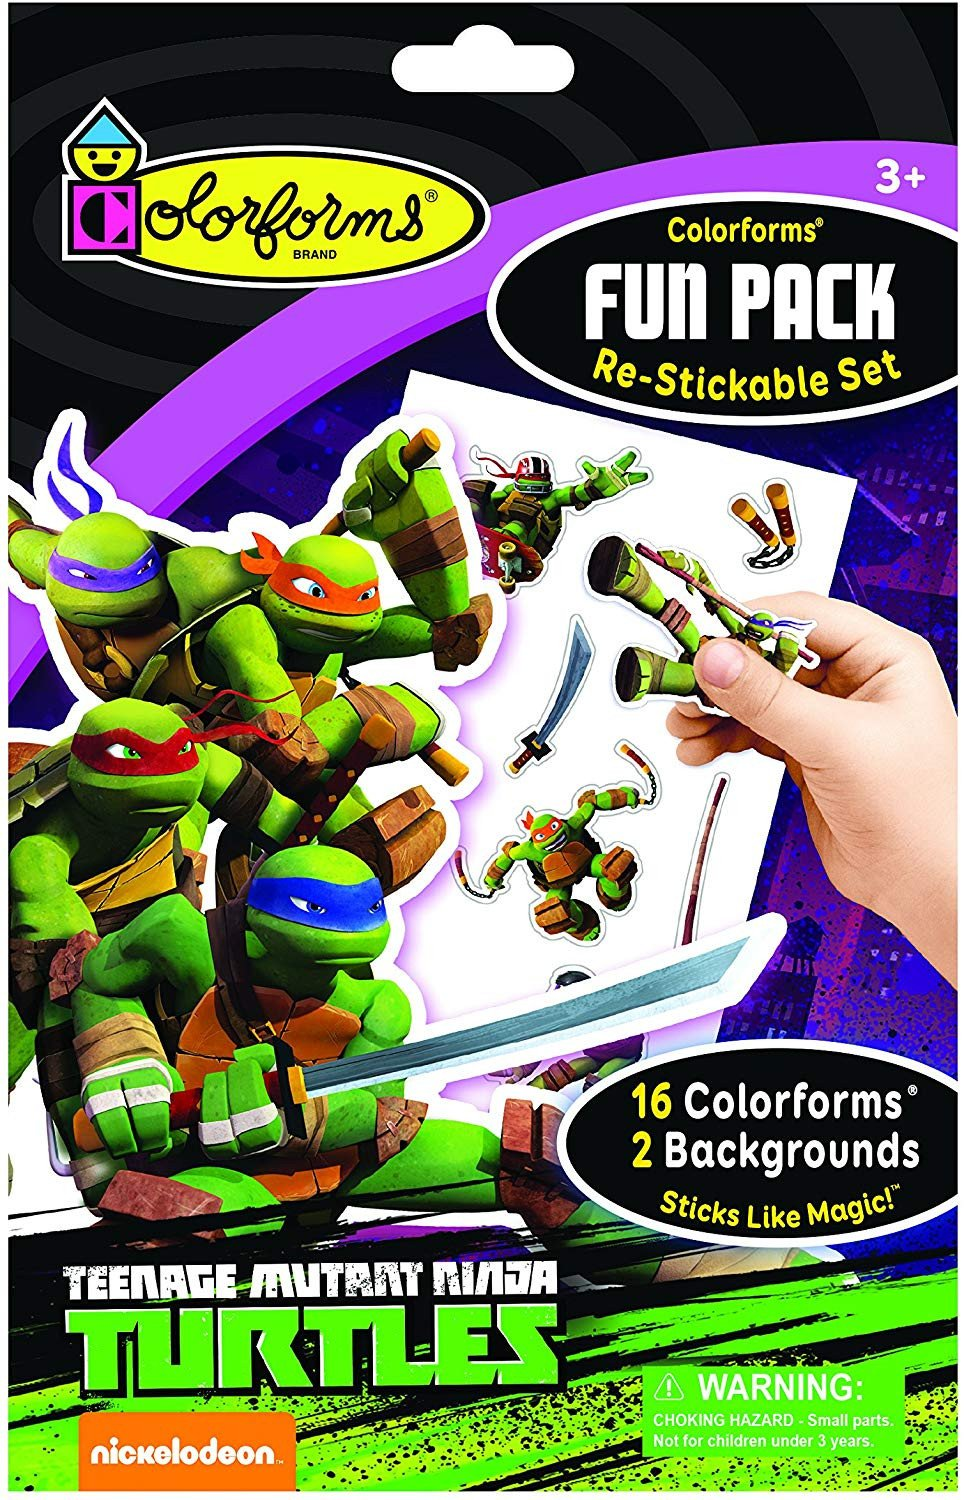 Teenage Mutant Ninja Turtles Bedroom Set Luxury Colorforms Fun Pack Teenage Mutant Ninja Turtles